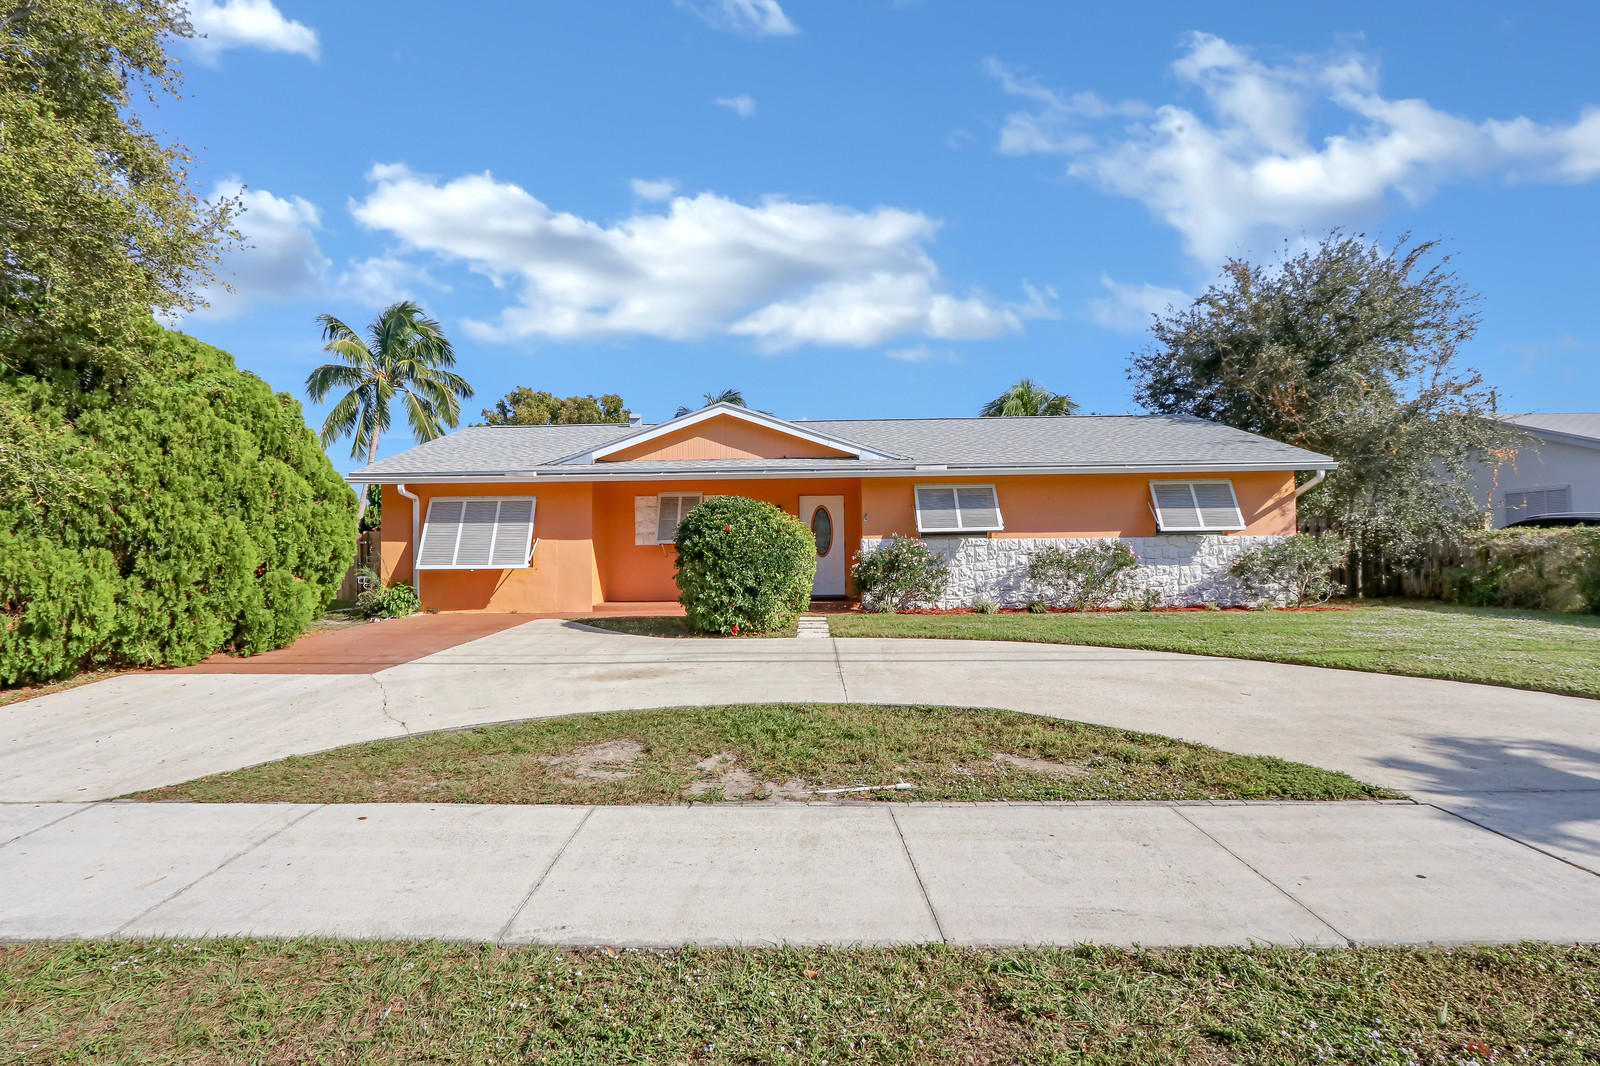 736 Prosperity Farms Road, North Palm Beach, Florida 33408, 3 Bedrooms Bedrooms, ,2 BathroomsBathrooms,Single Family,For Sale,Prosperity Farms,RX-10489697